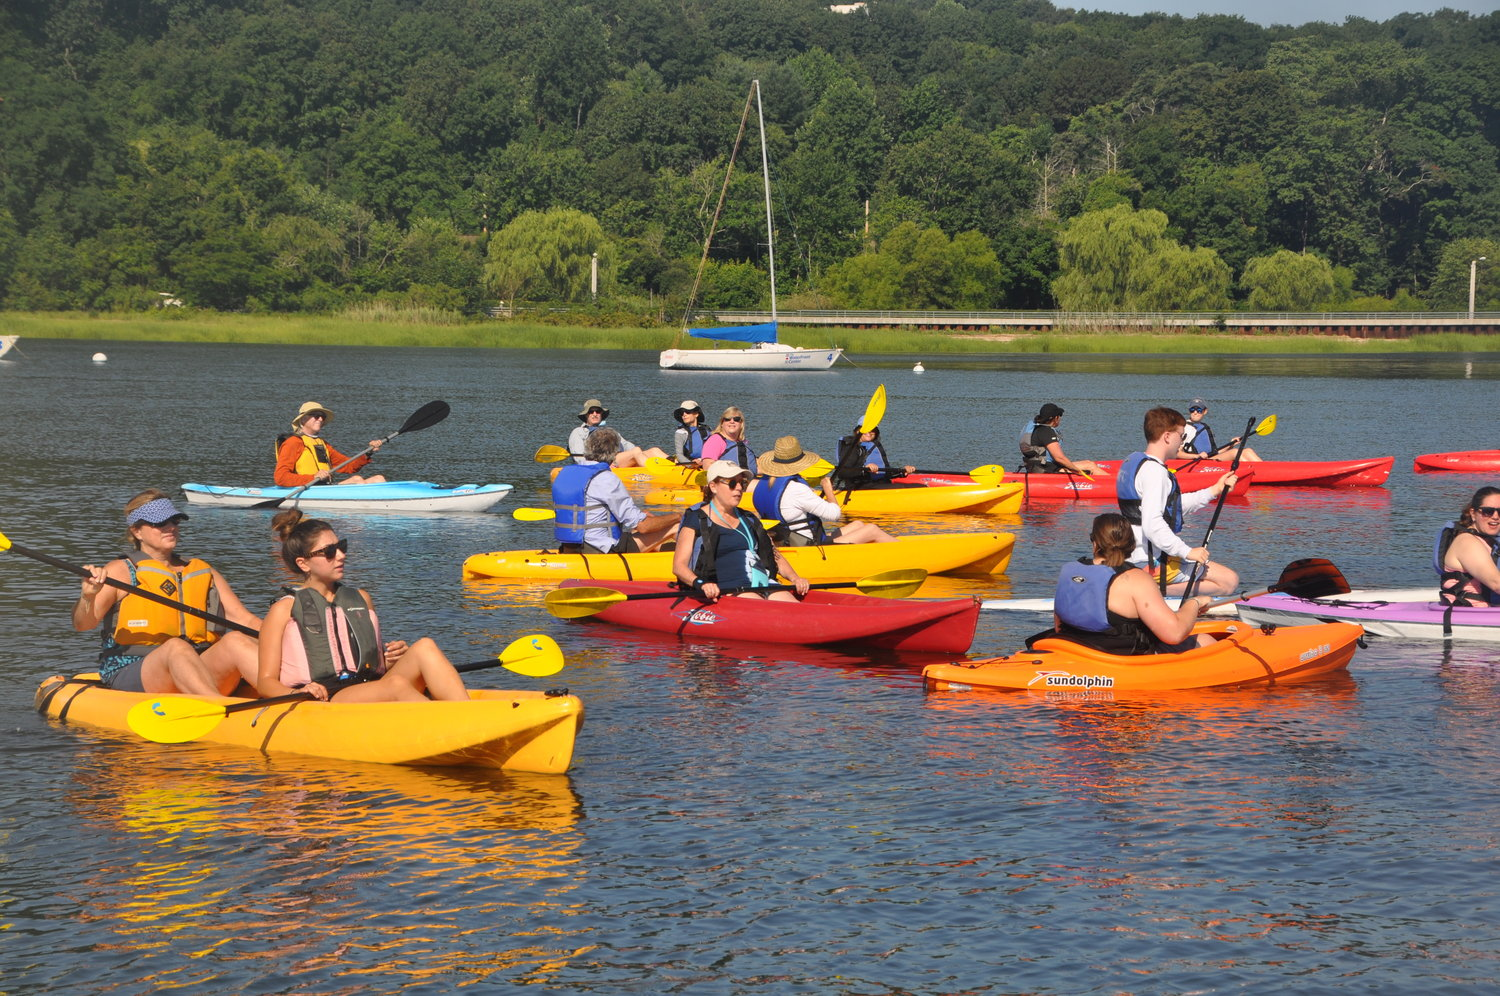 The kayakers and paddleboarders enjoyed a day out on the water.